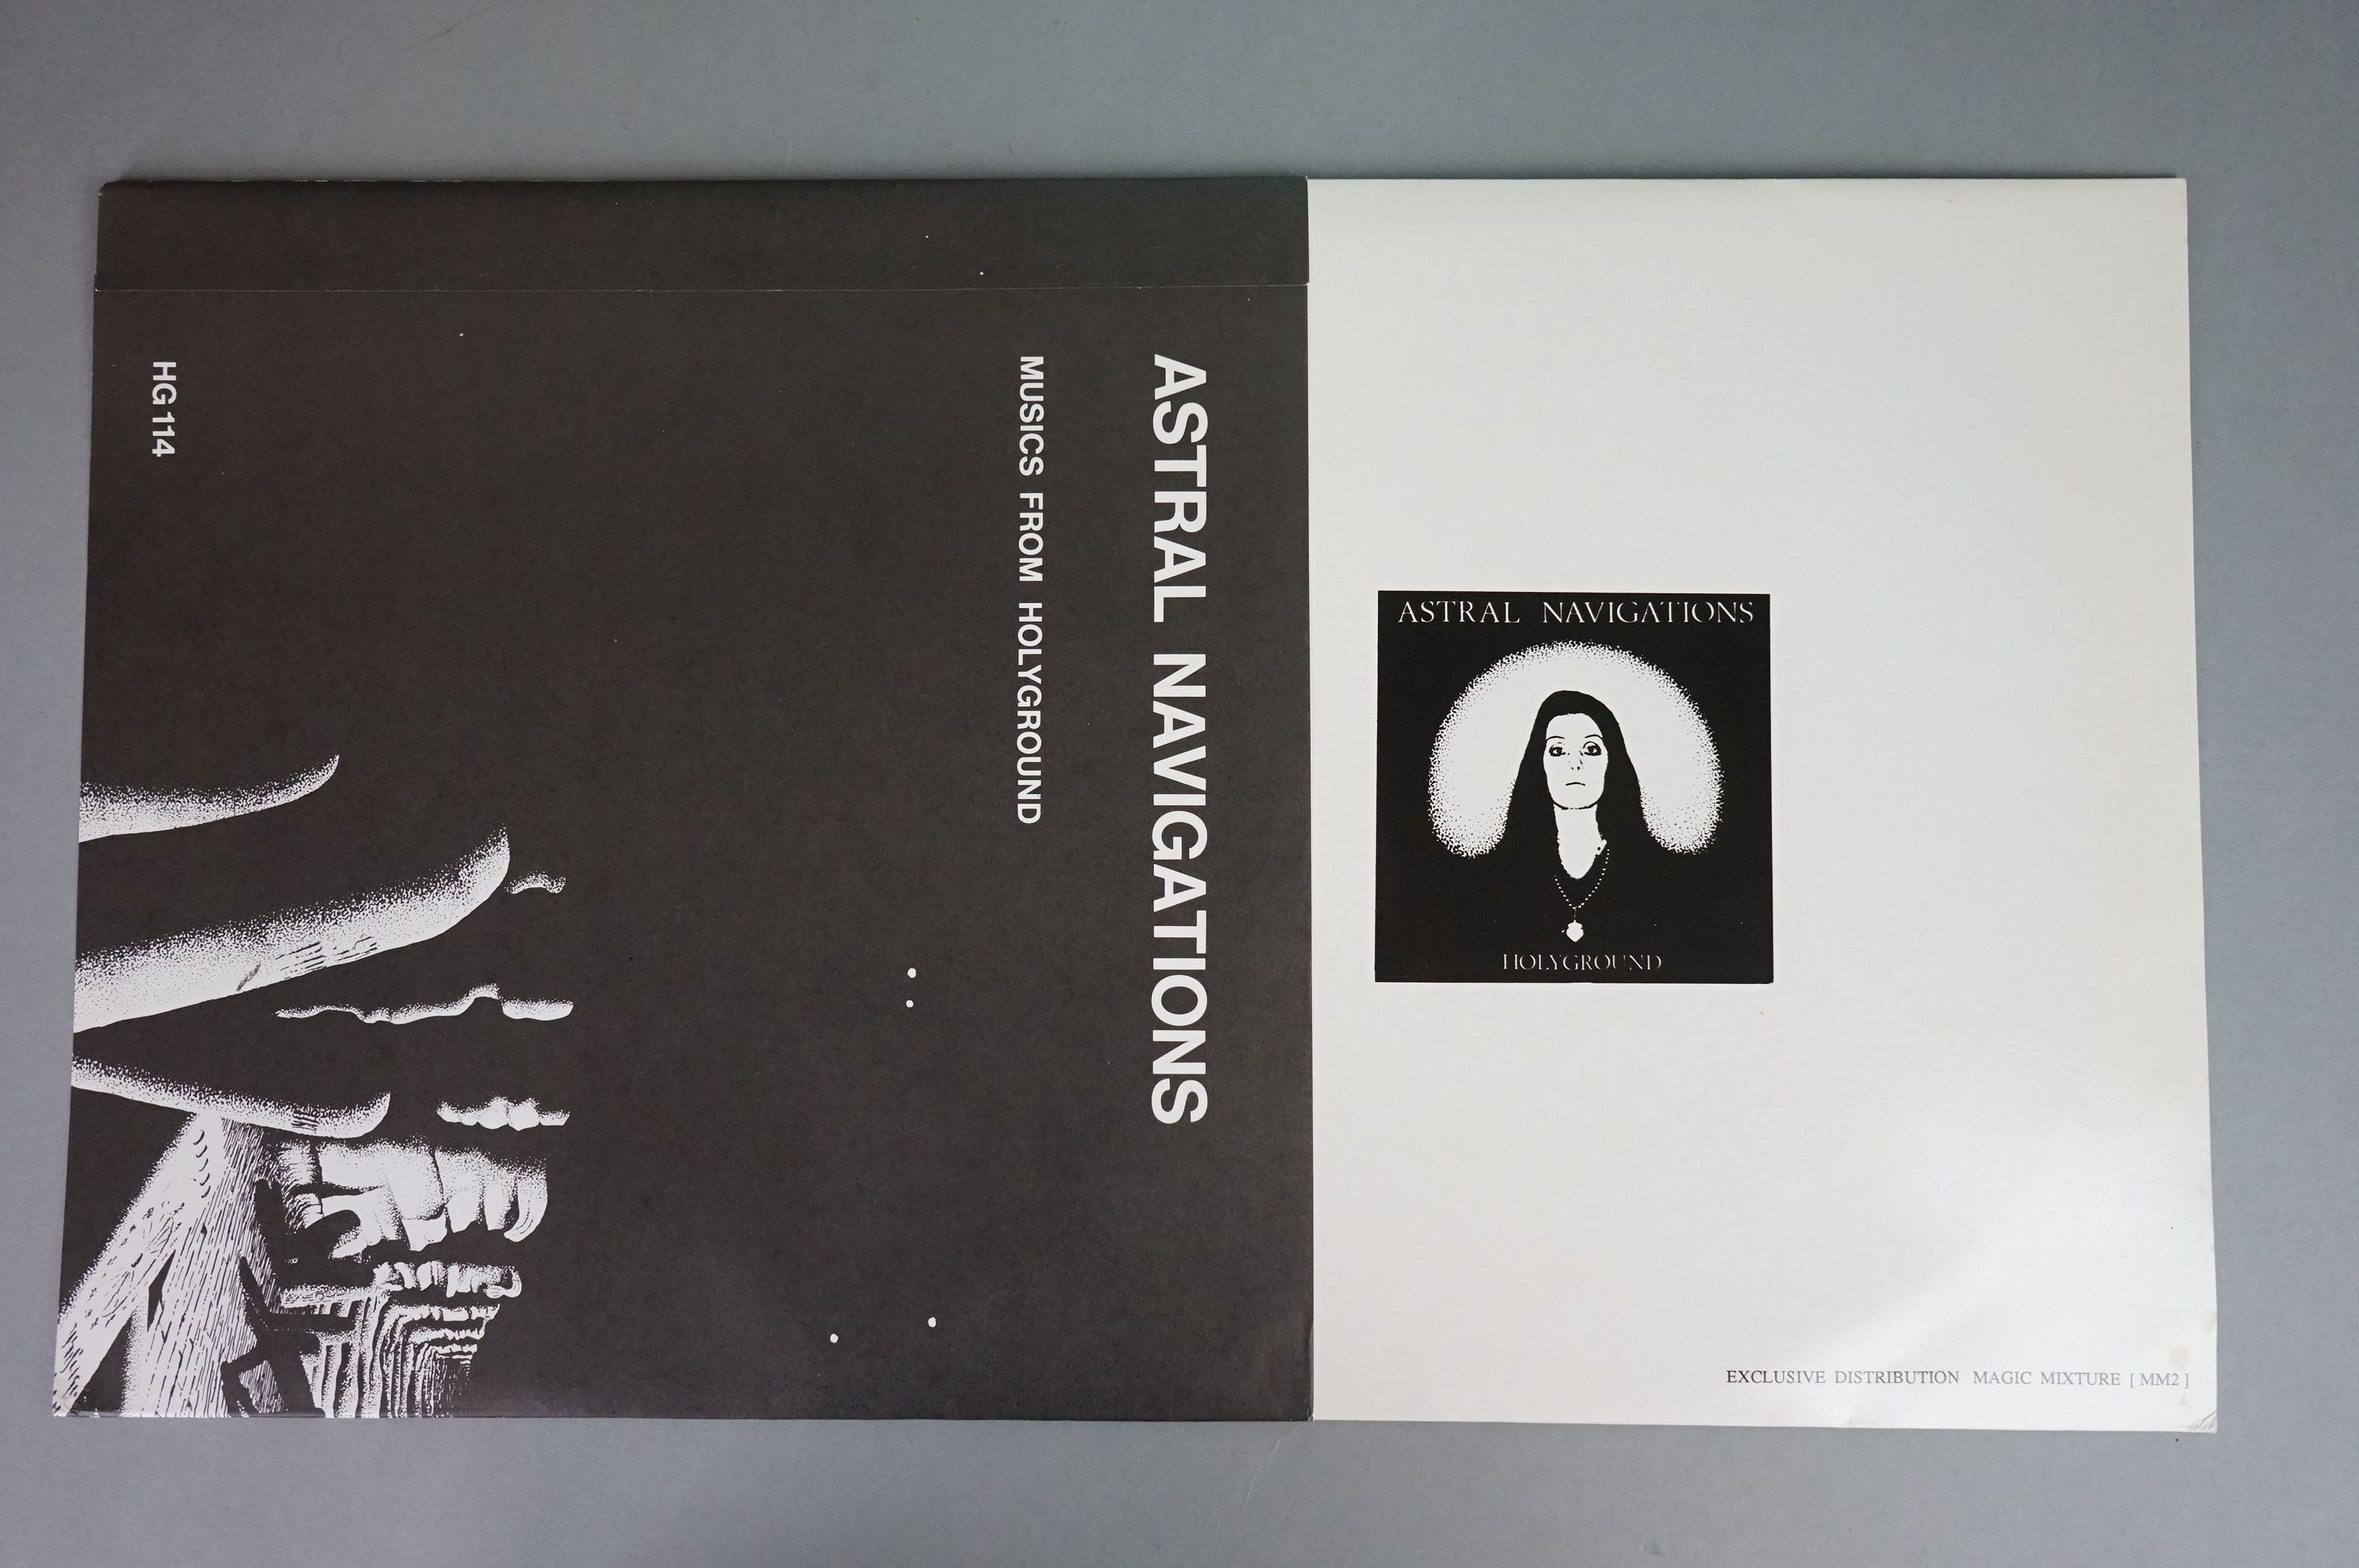 Vinyl - Lightyears Away / Thundermother ?? Astral Navigations (HG 114) numbered Ltd Edition - Image 8 of 12